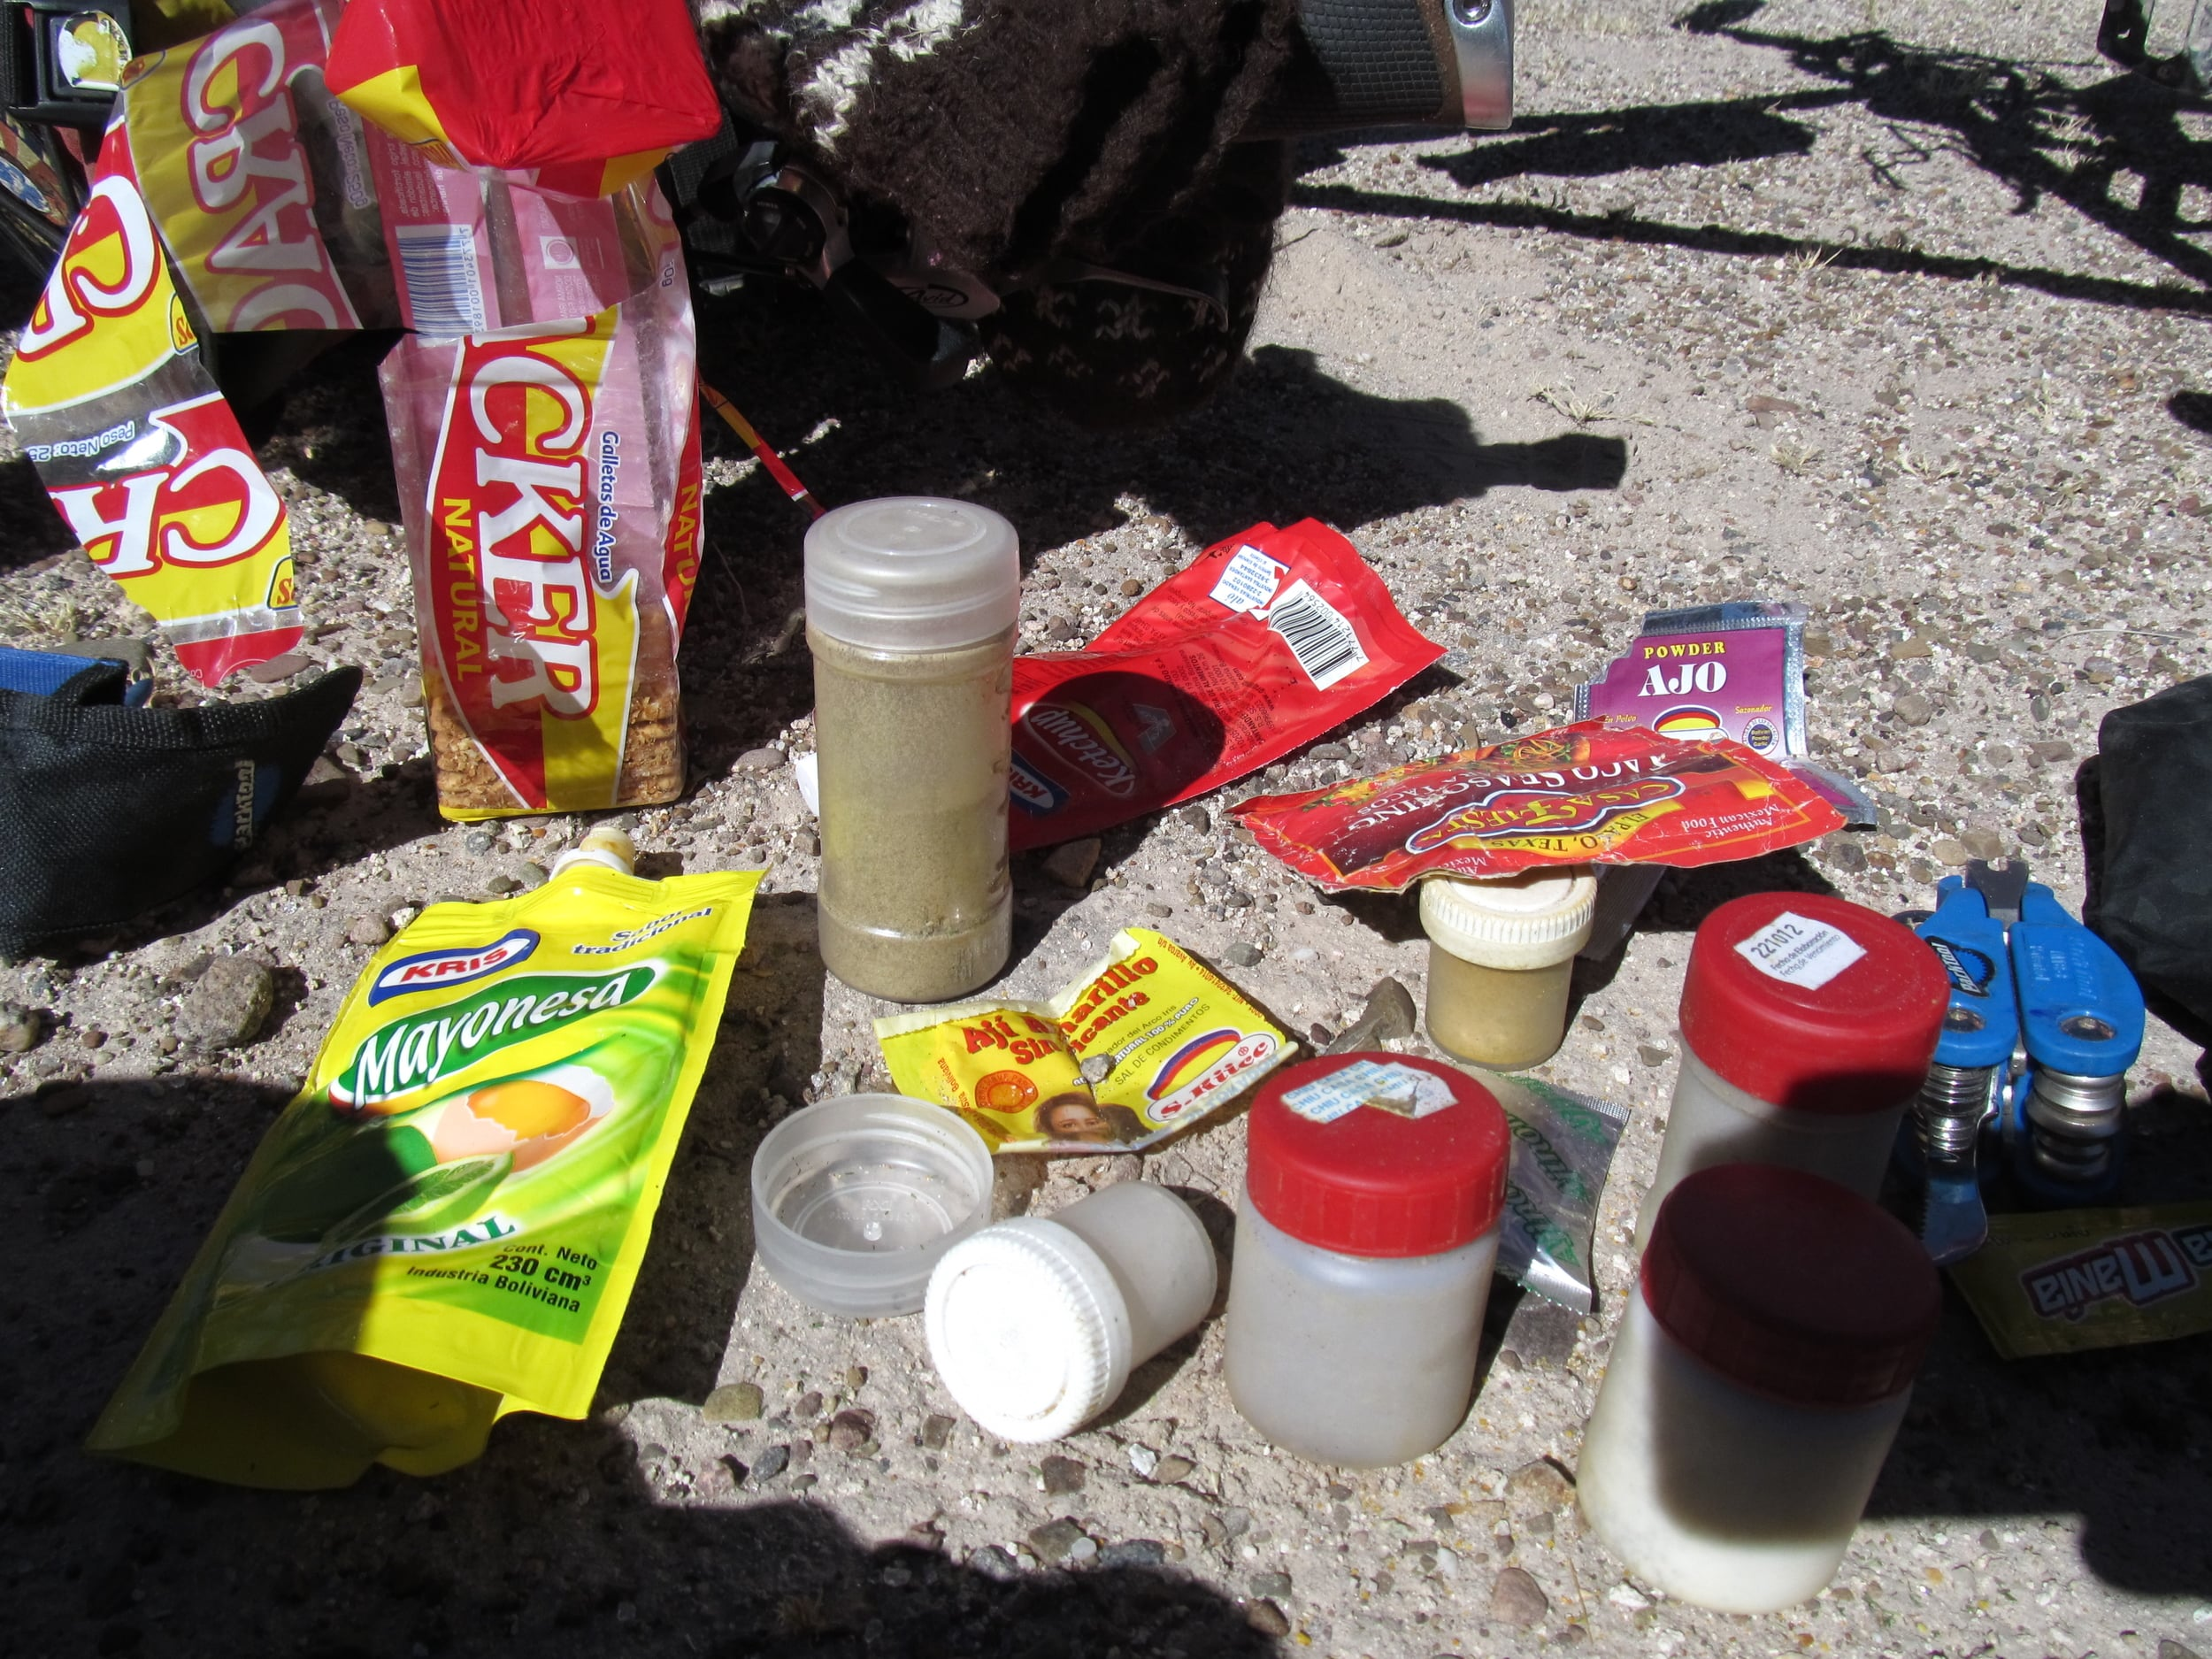 Here is what we were working with. That is ketchup, mayo, mustard, and assorted spices.